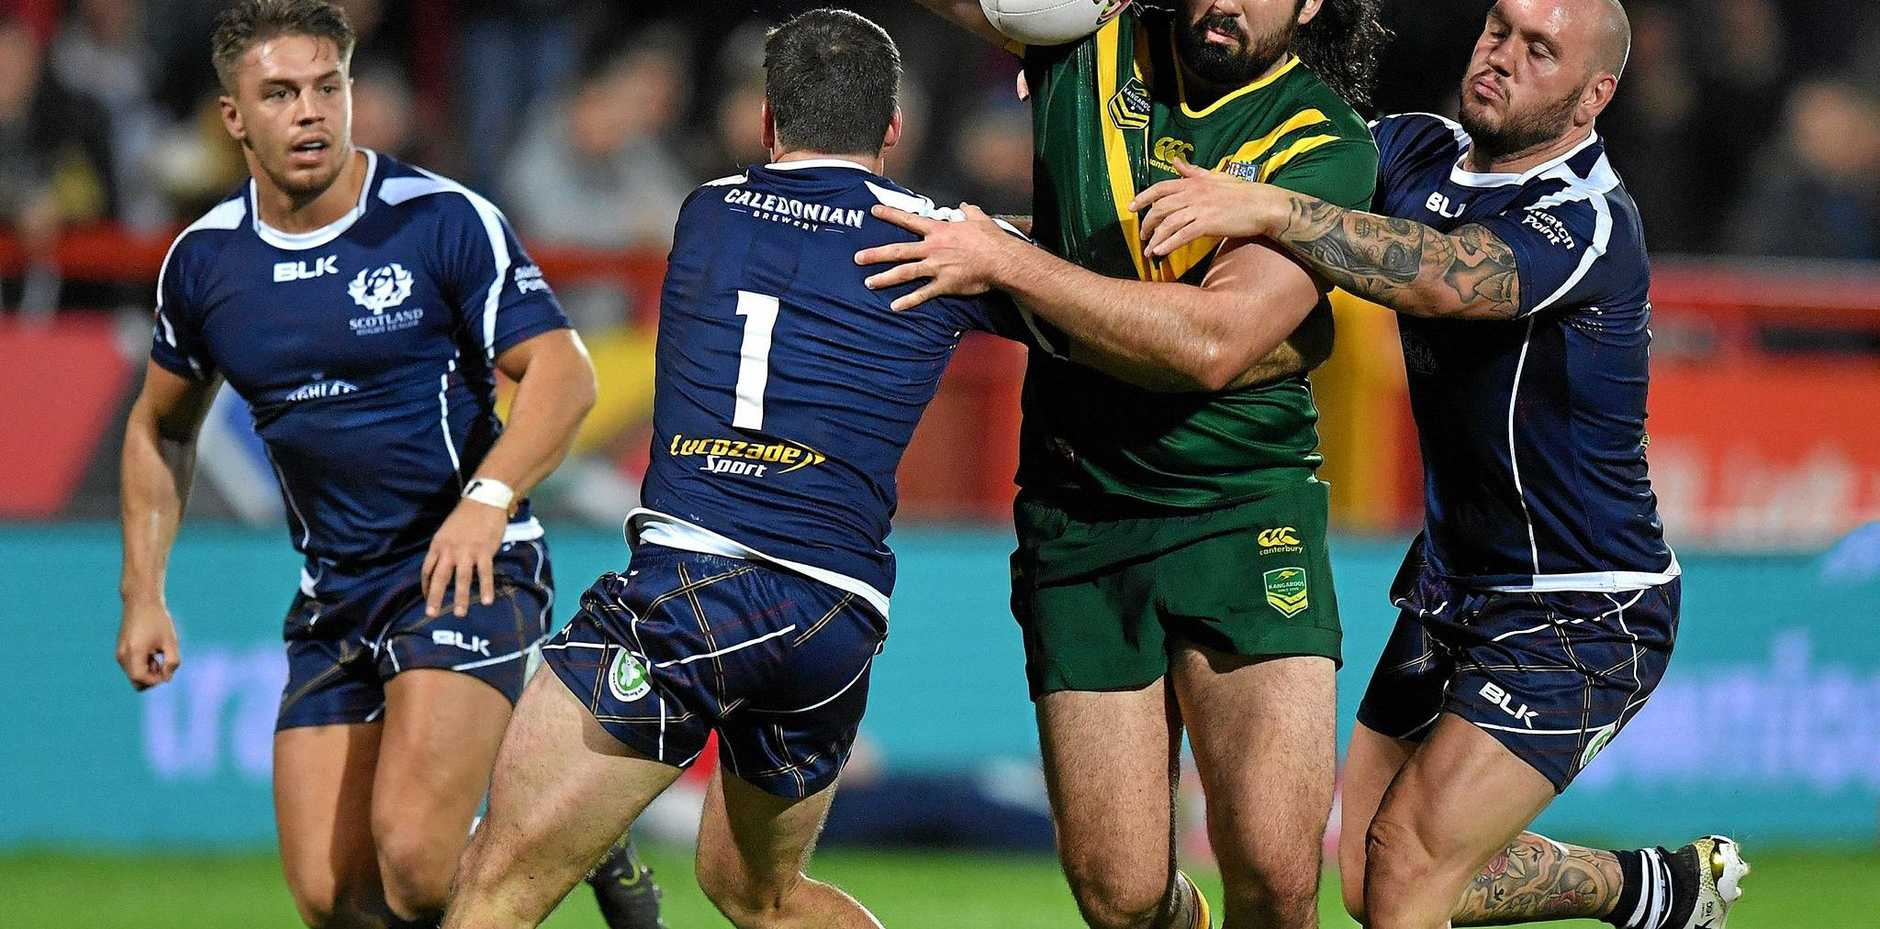 Australia's Aaron Woods is tackled by Scotland's Lachlan Coote and Dale Ferguson during their Four Nations match in Hull.